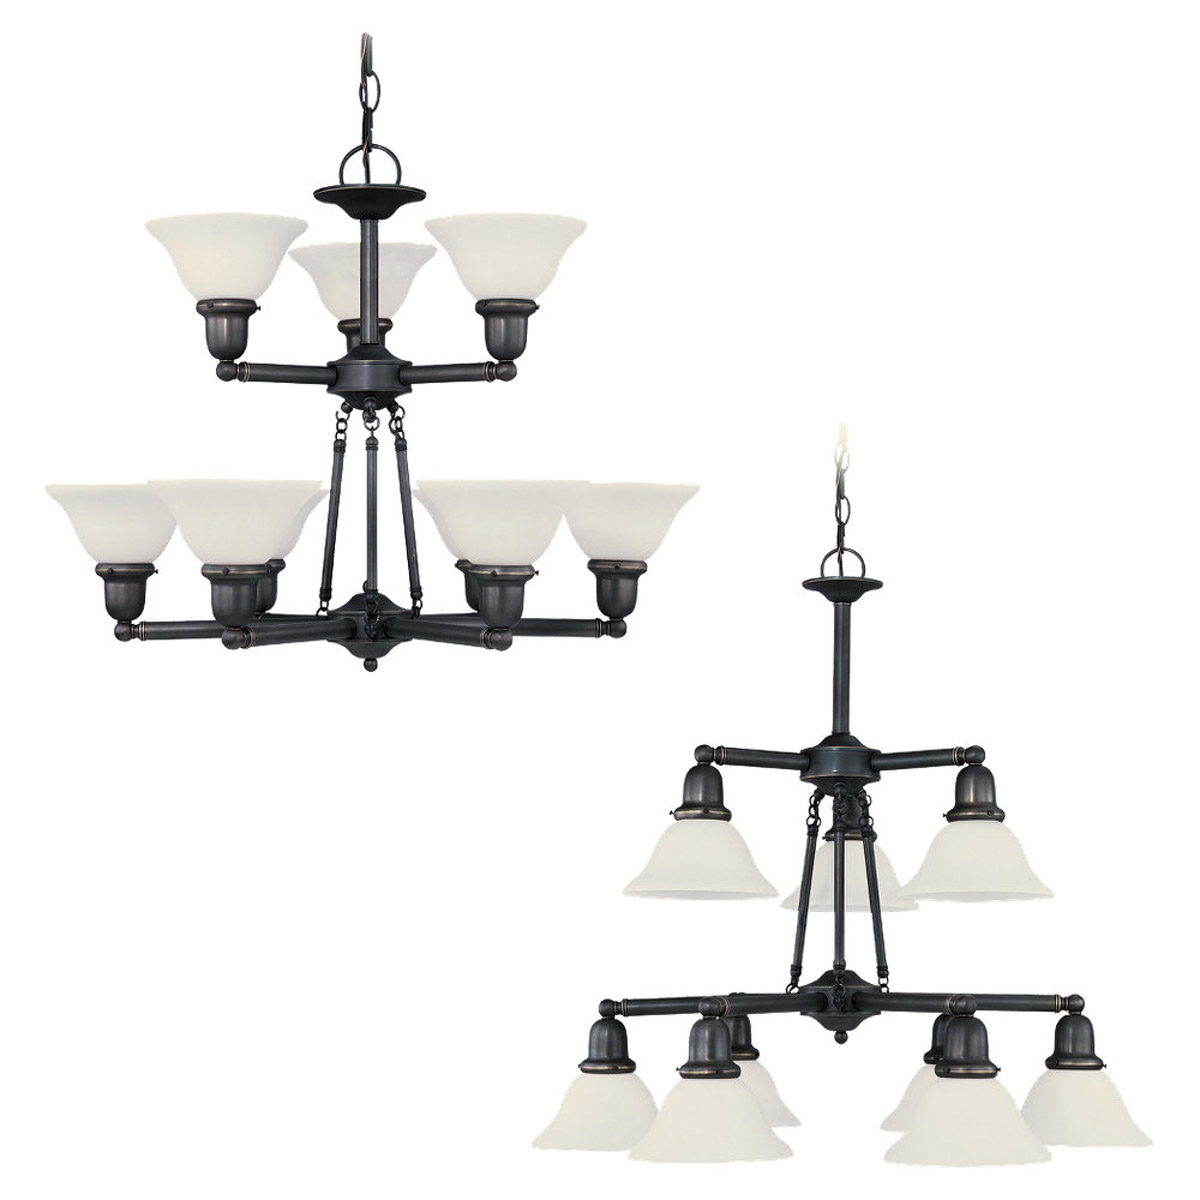 Sea Gull Lighting Sussex 9 Light Chandelier in Heirloom Bronze 39063BLE-782 photo